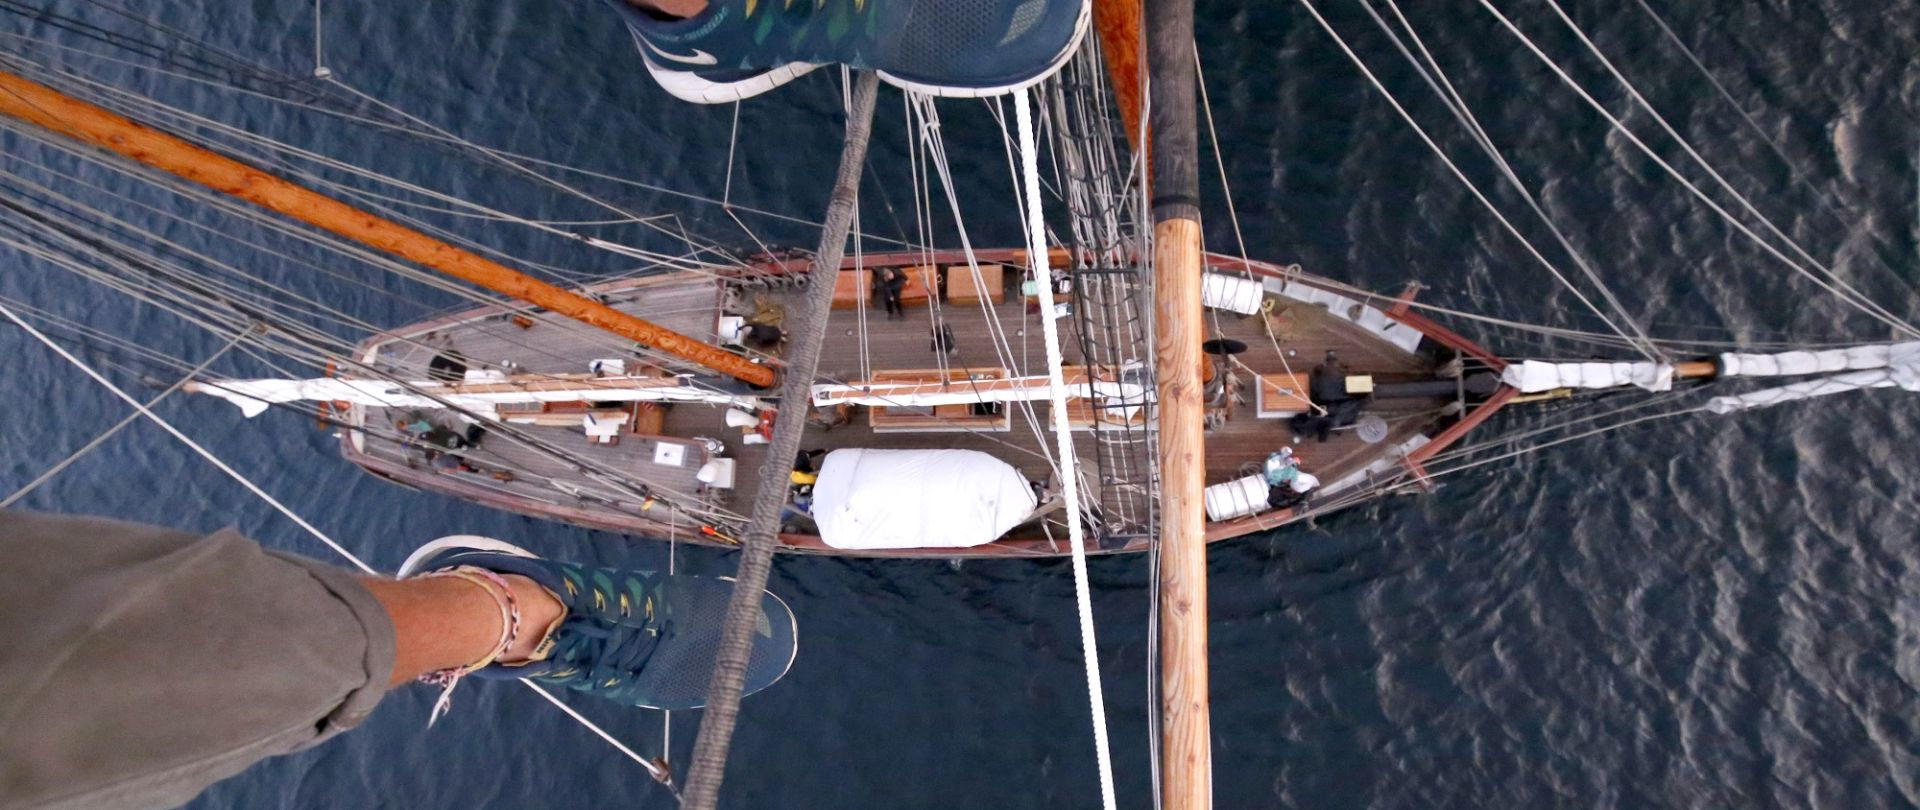 Pacific Grace, Pacific Swift, and the New Schooner